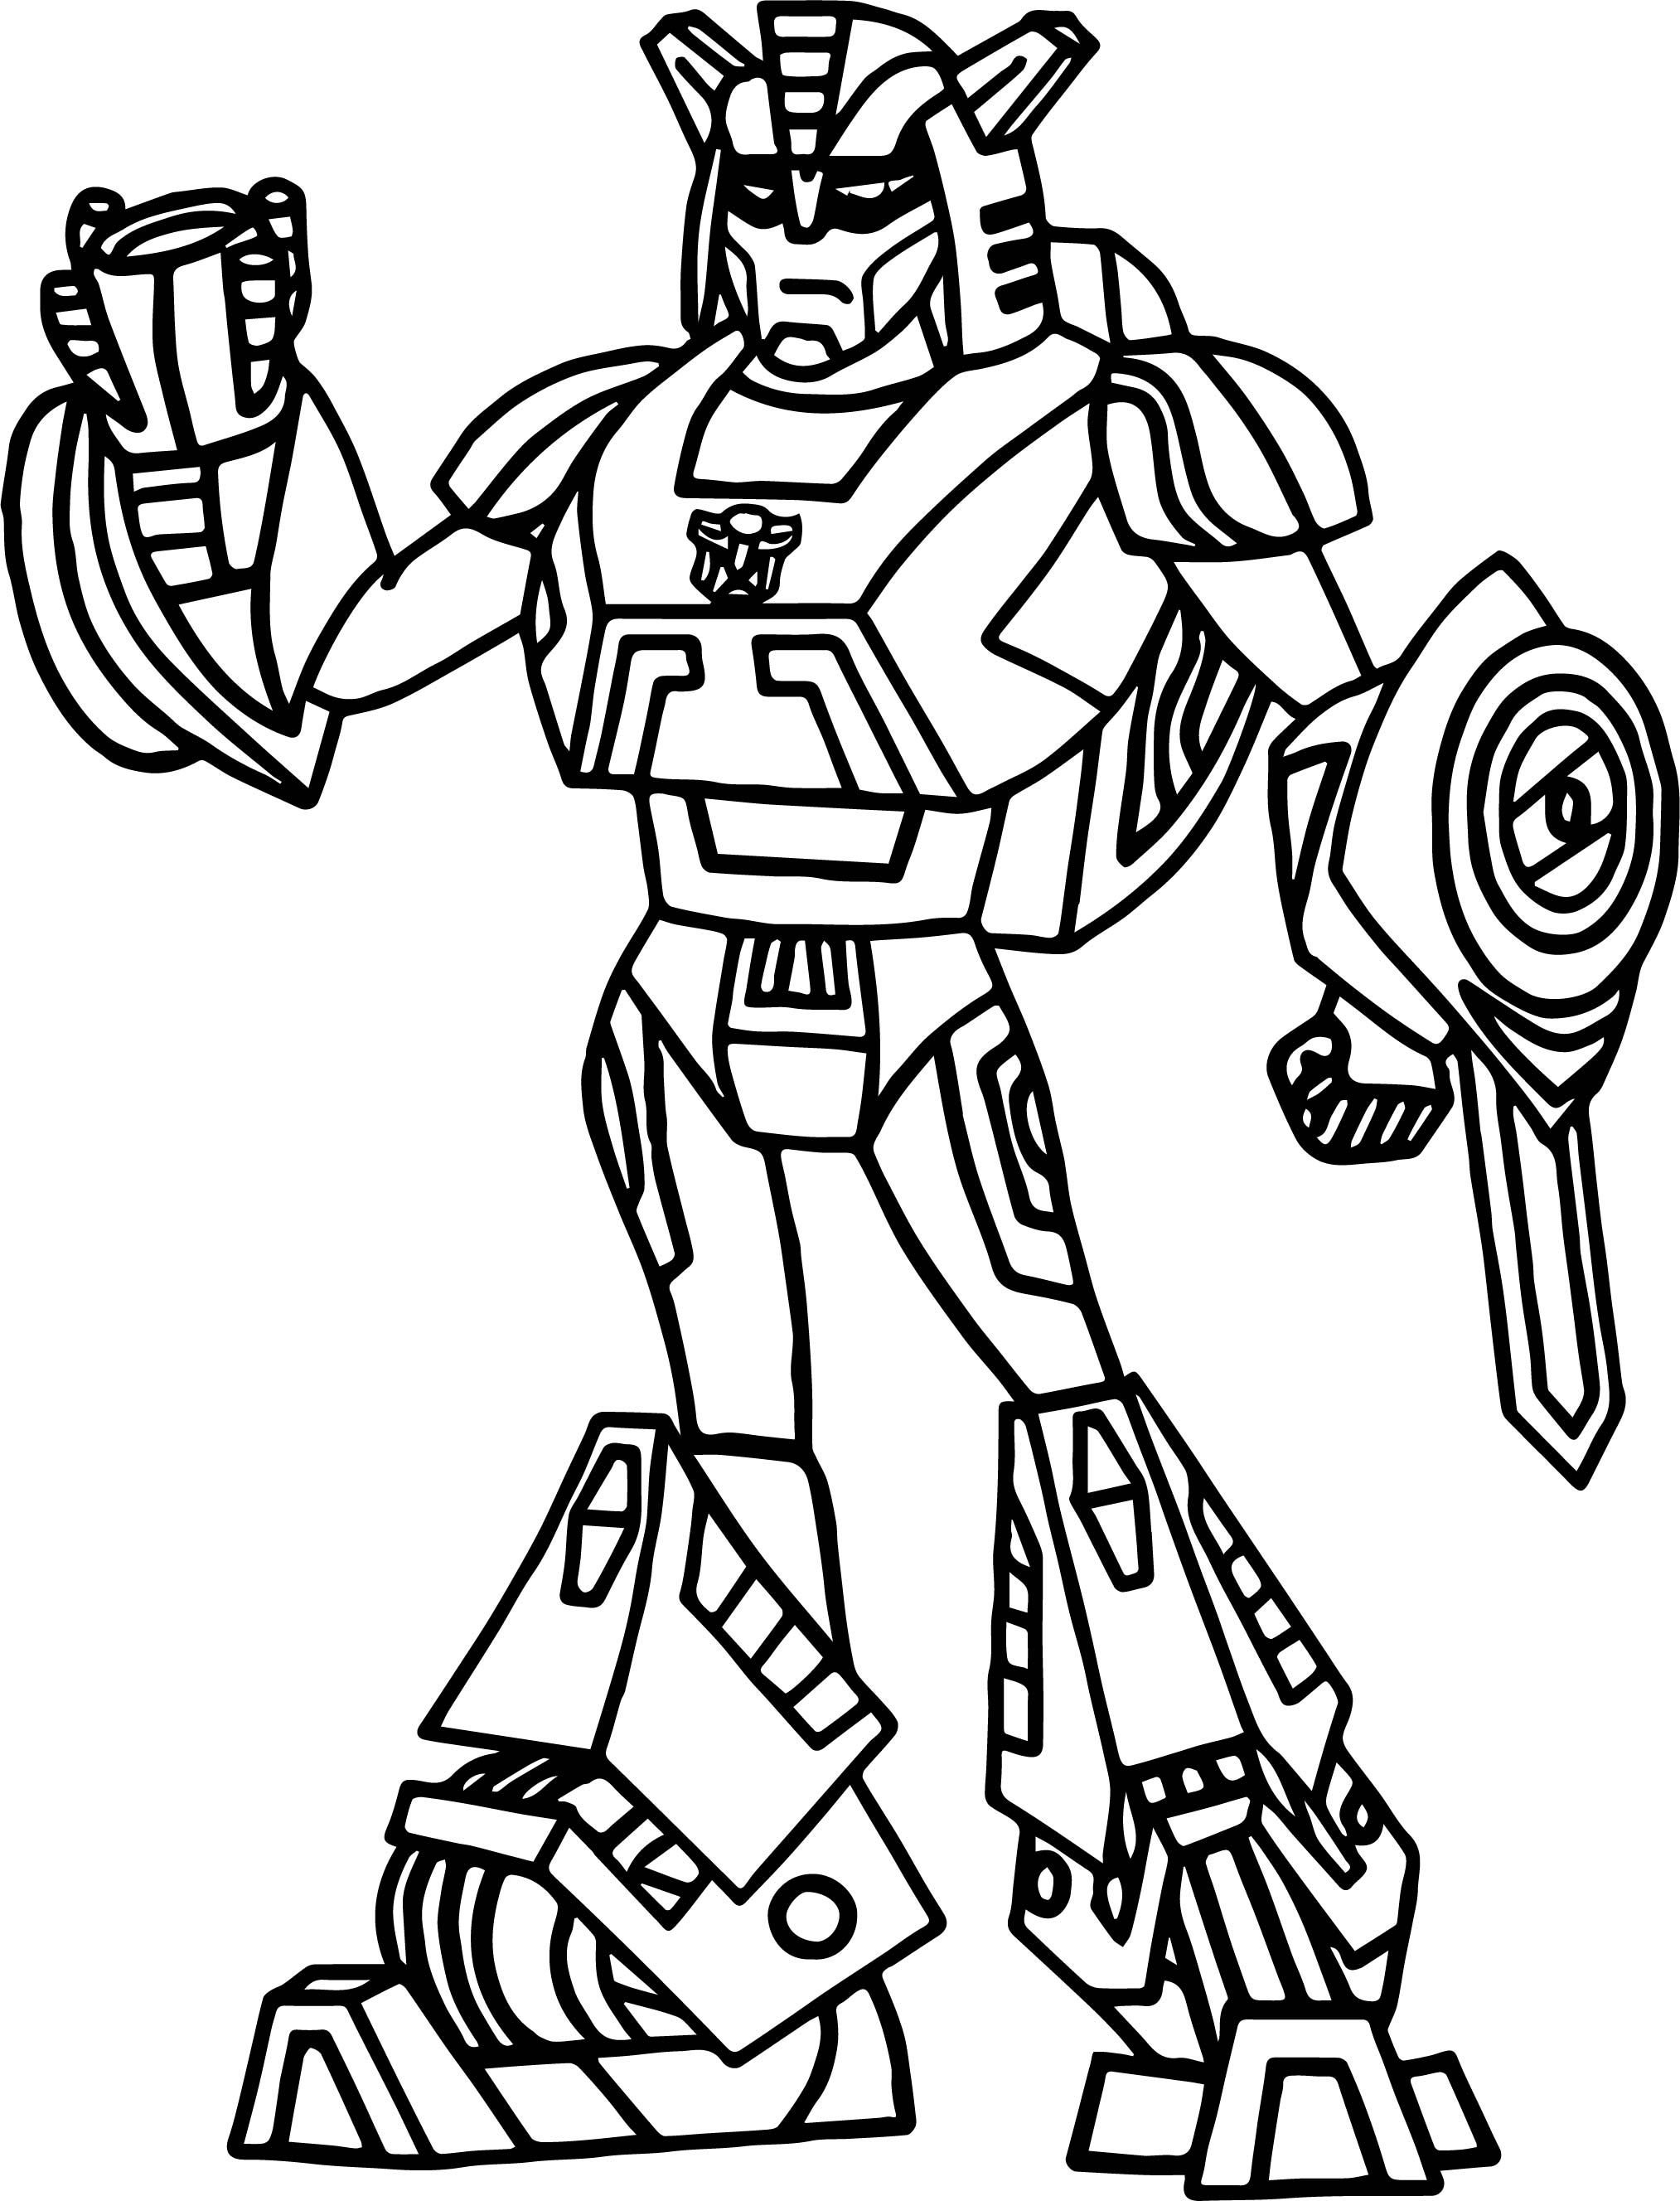 transformers fighting coloring pages - photo#21